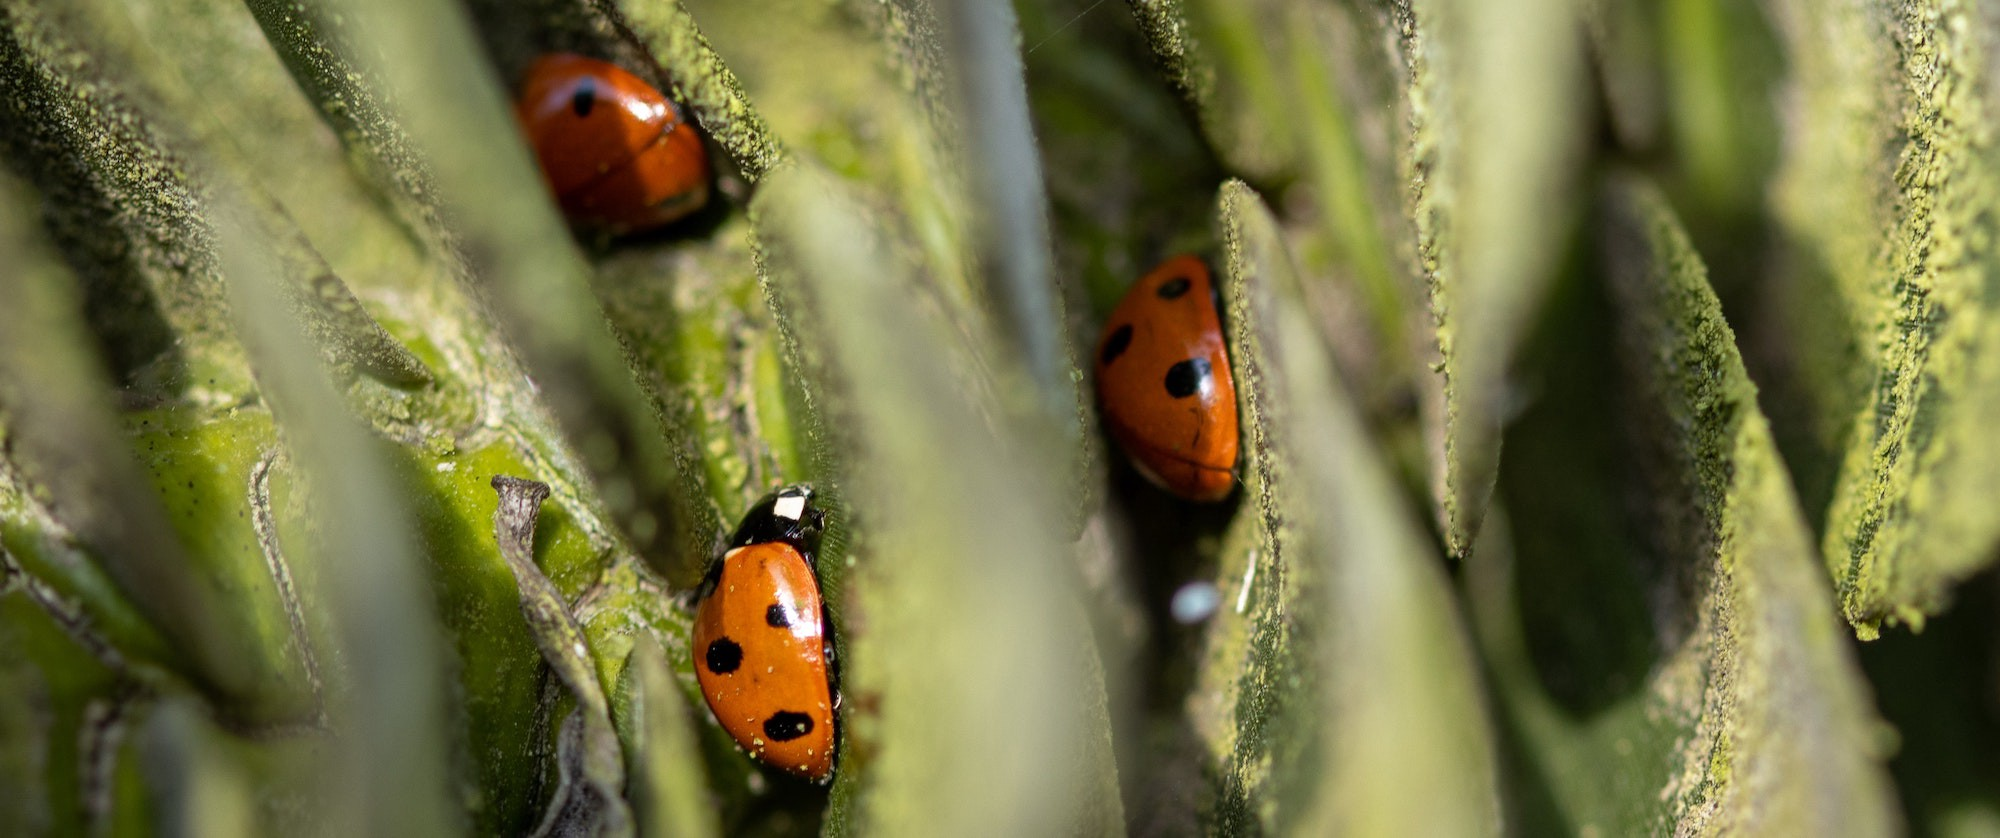 Cover photo of lady bugs hidden between leaves